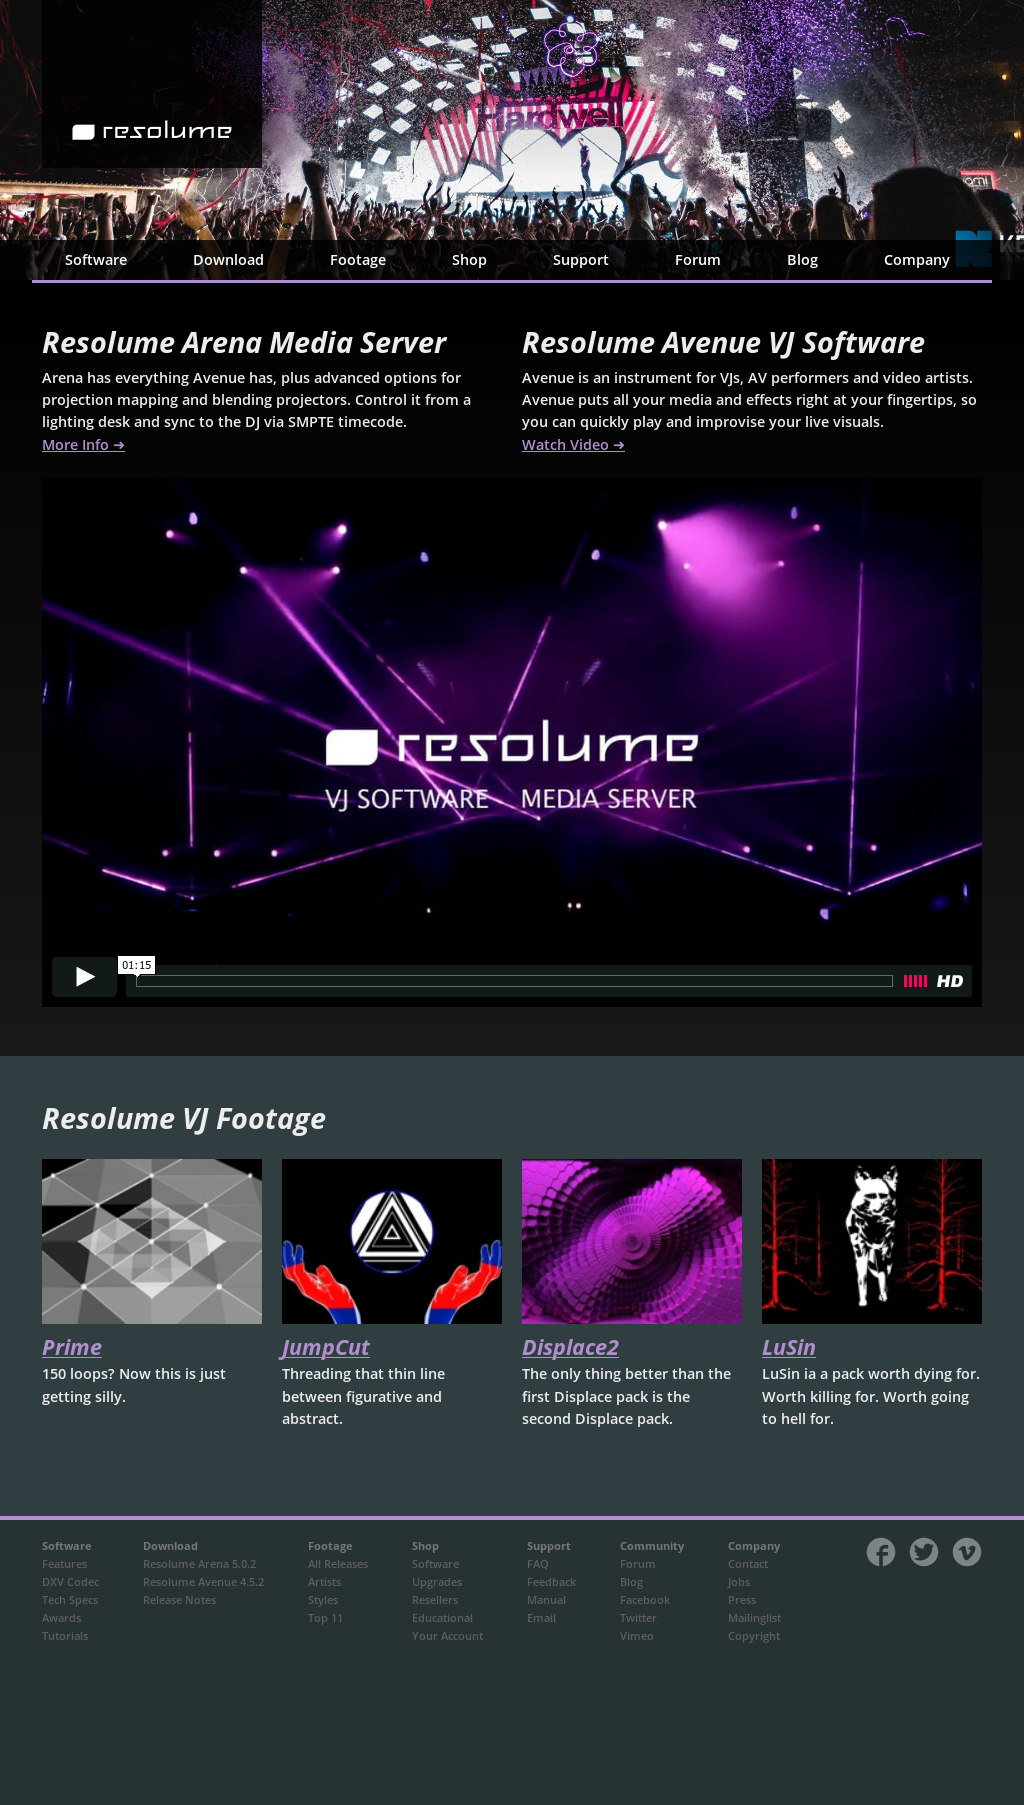 Resolume Vj Software Competitors, Revenue and Employees - Owler